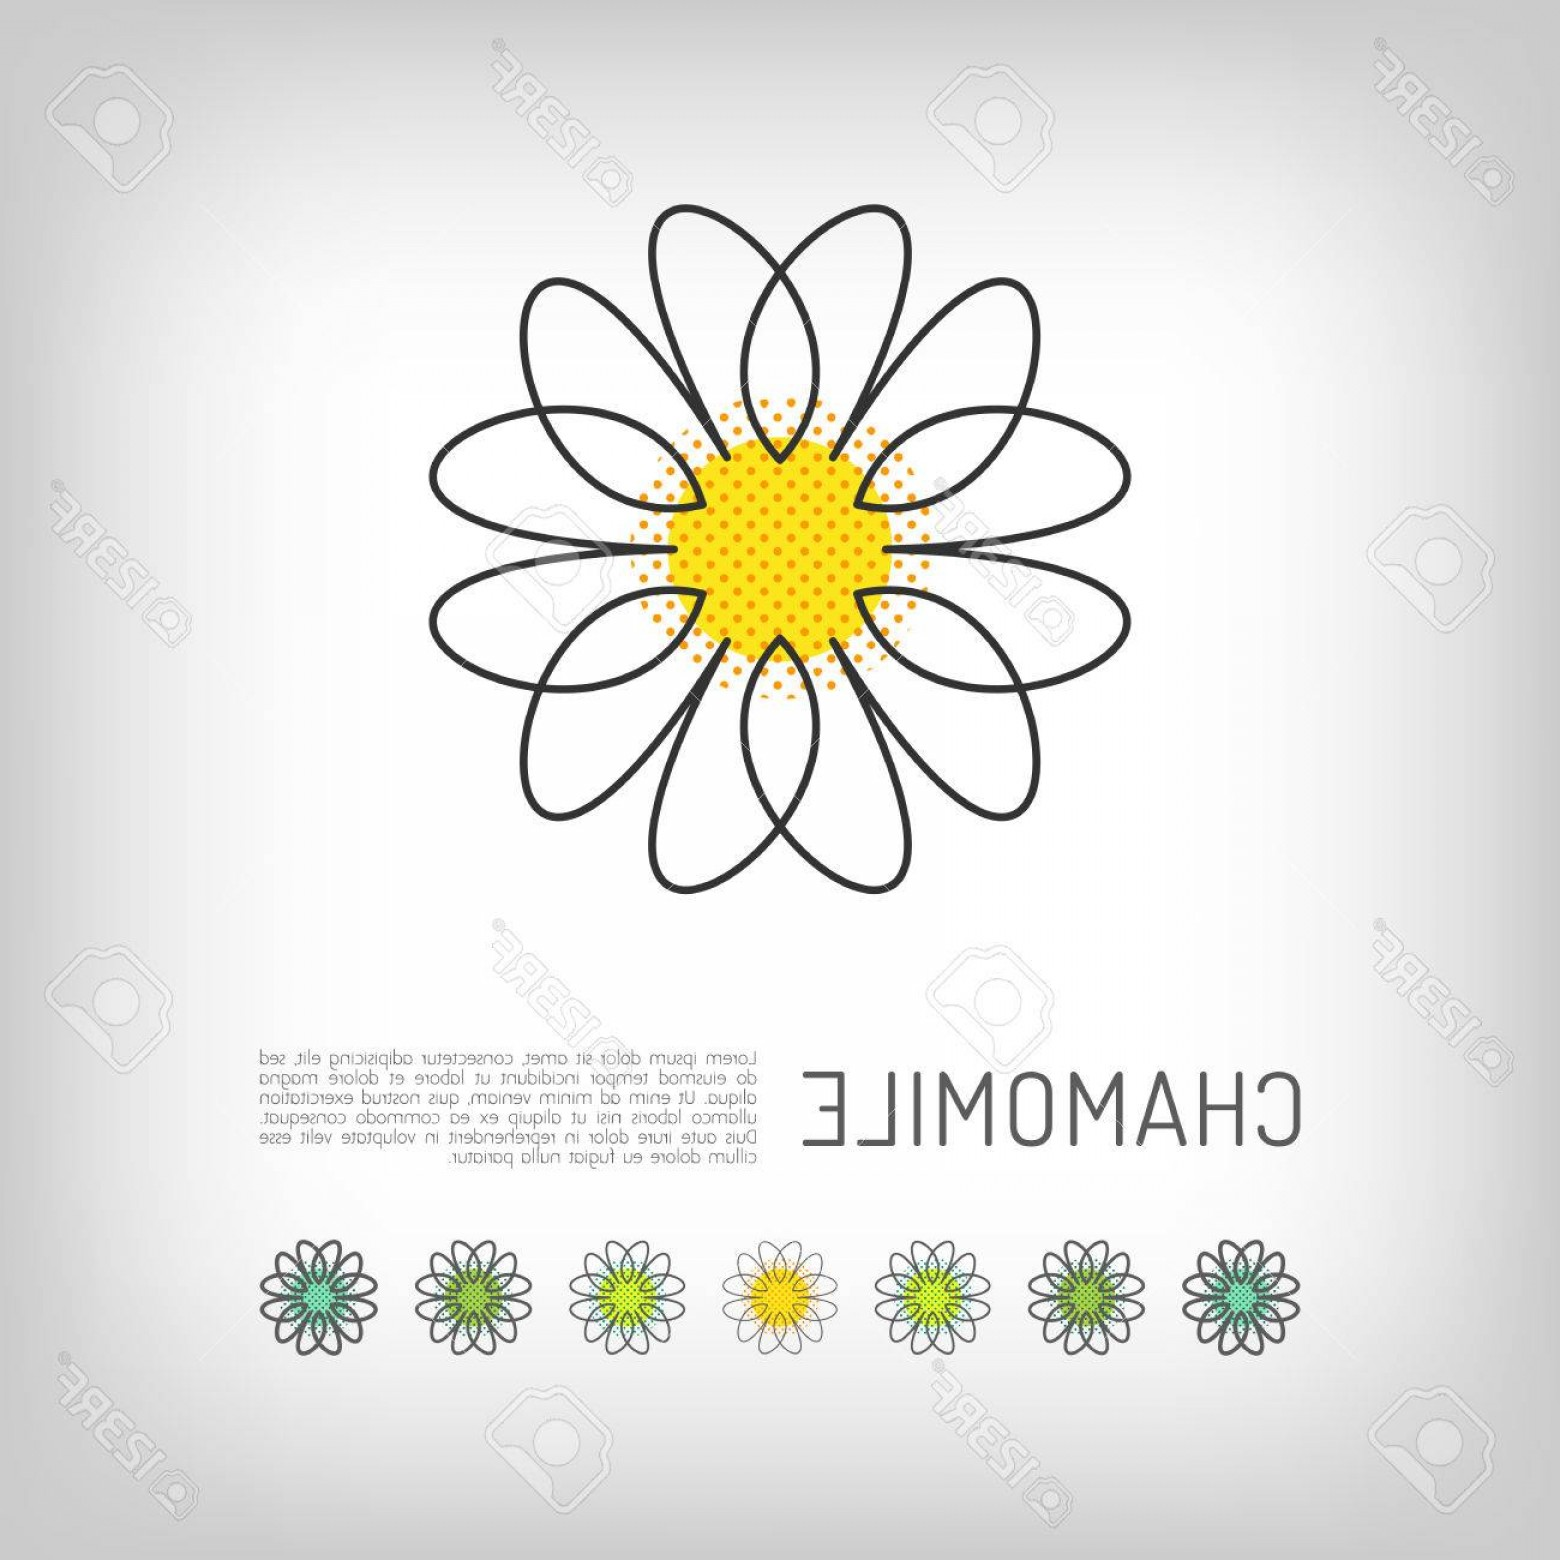 Simple Vector Daisy: Photostock Vector Chamomile Thin Line Art Icon Isolated Daisy Abstract Flower Design Simple Floral Modern Minimal Desi